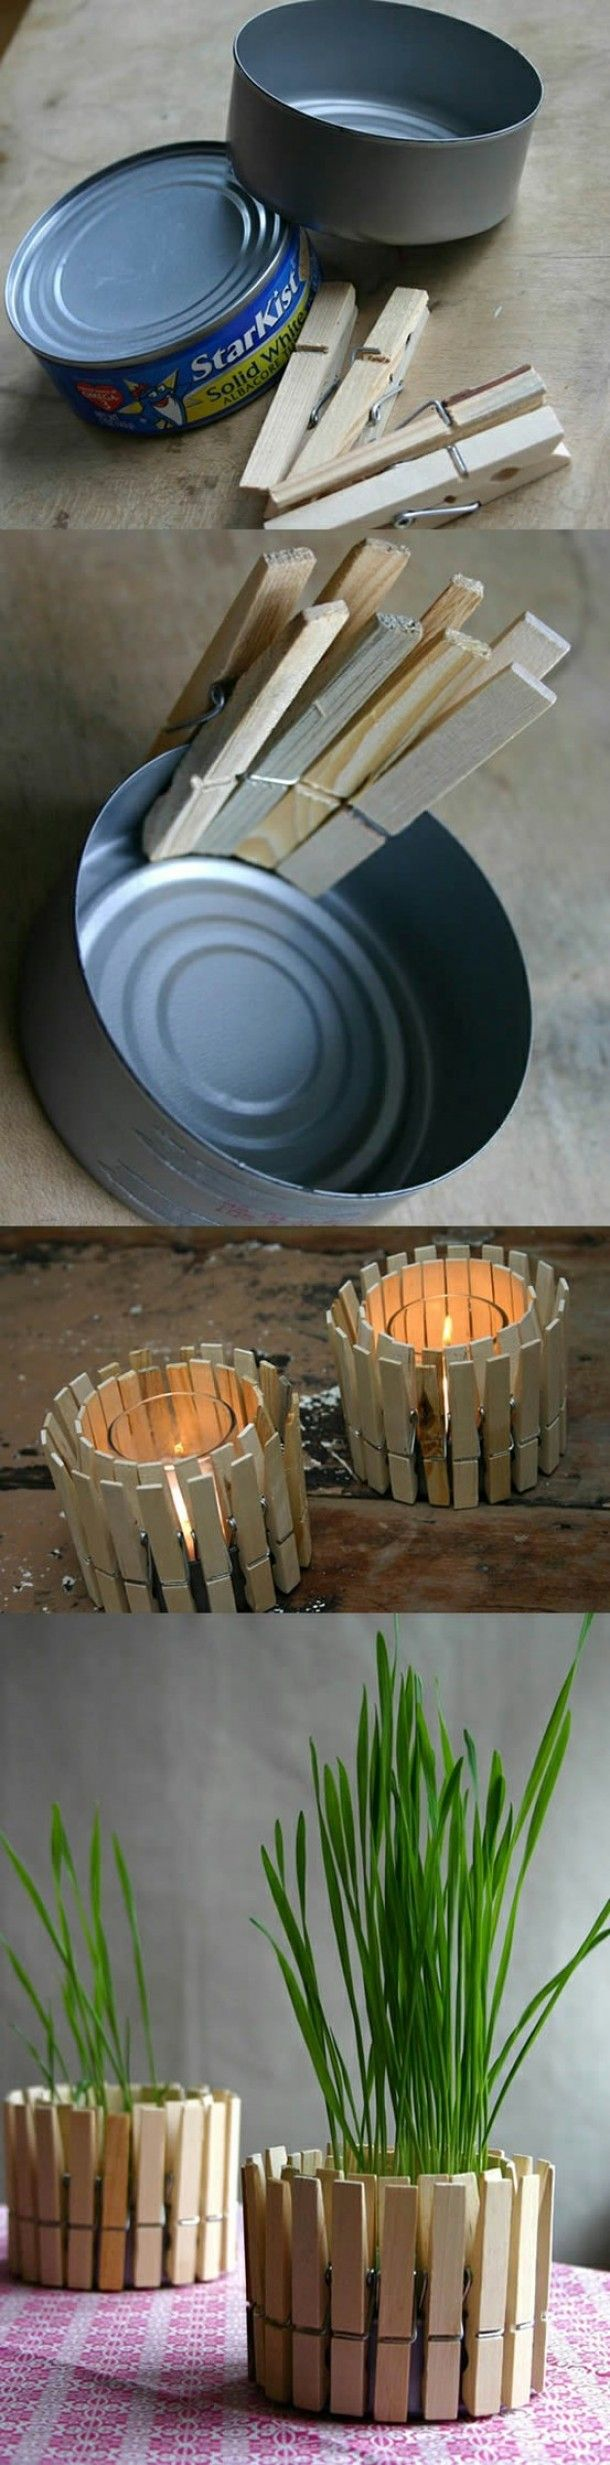 Cool #diy from cans